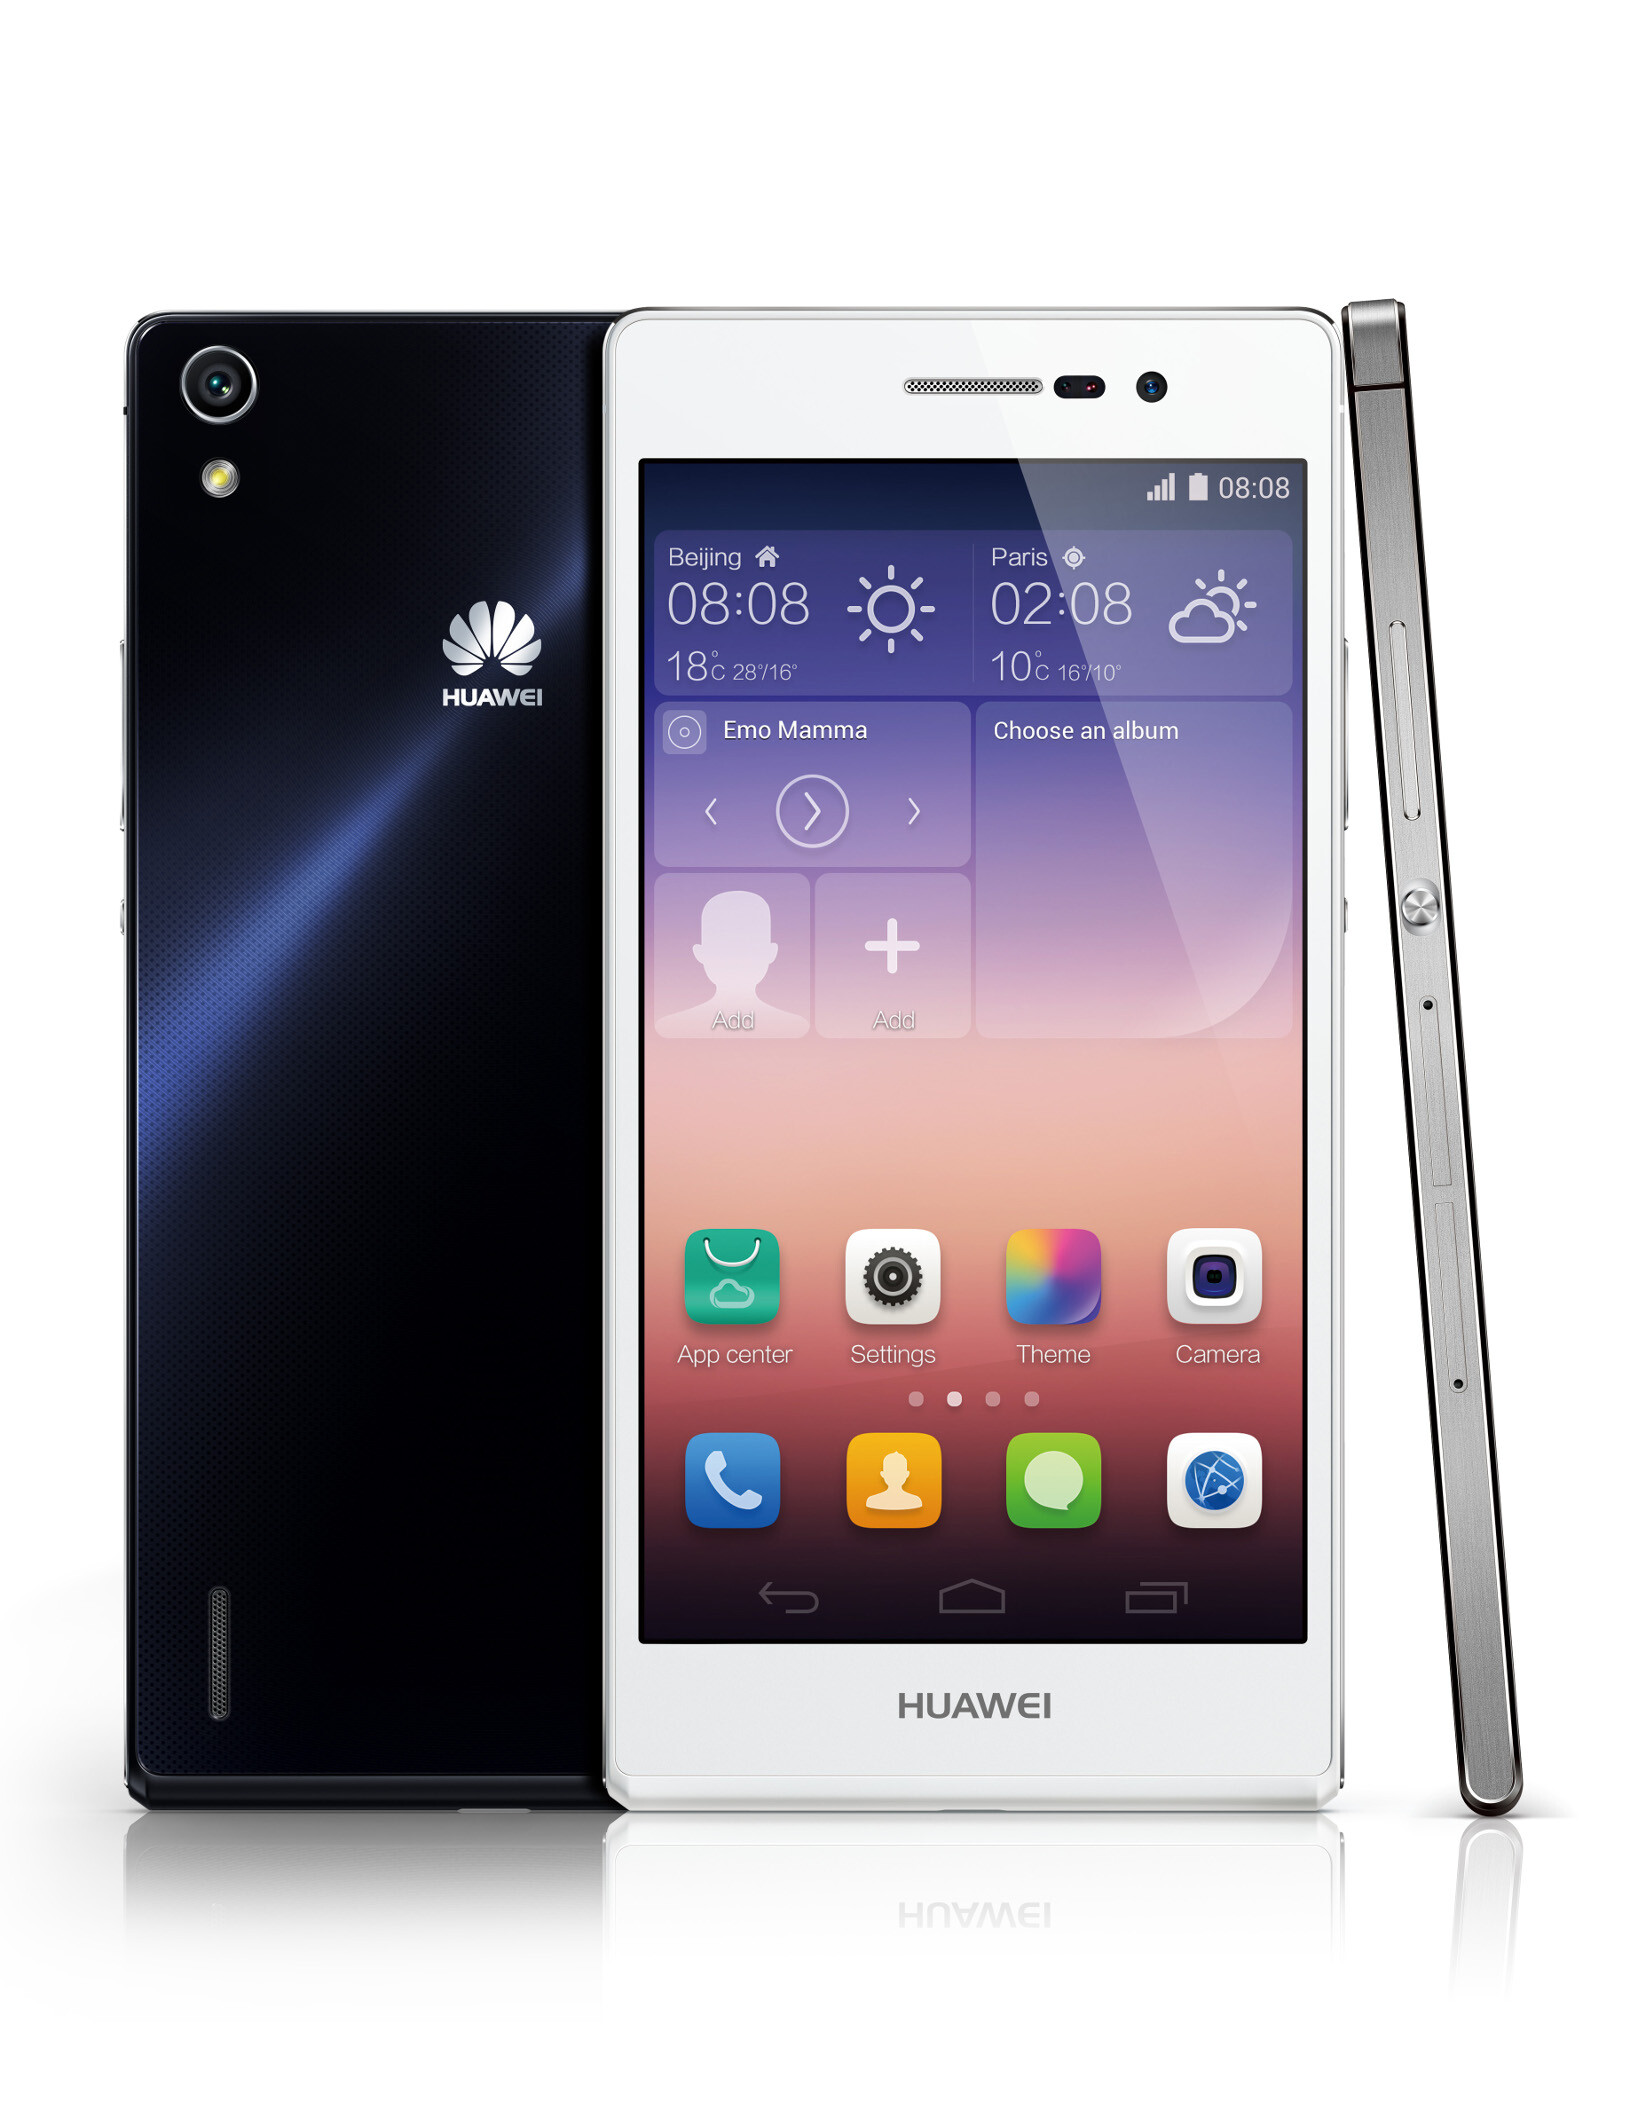 Huawei Ascend P7 specs